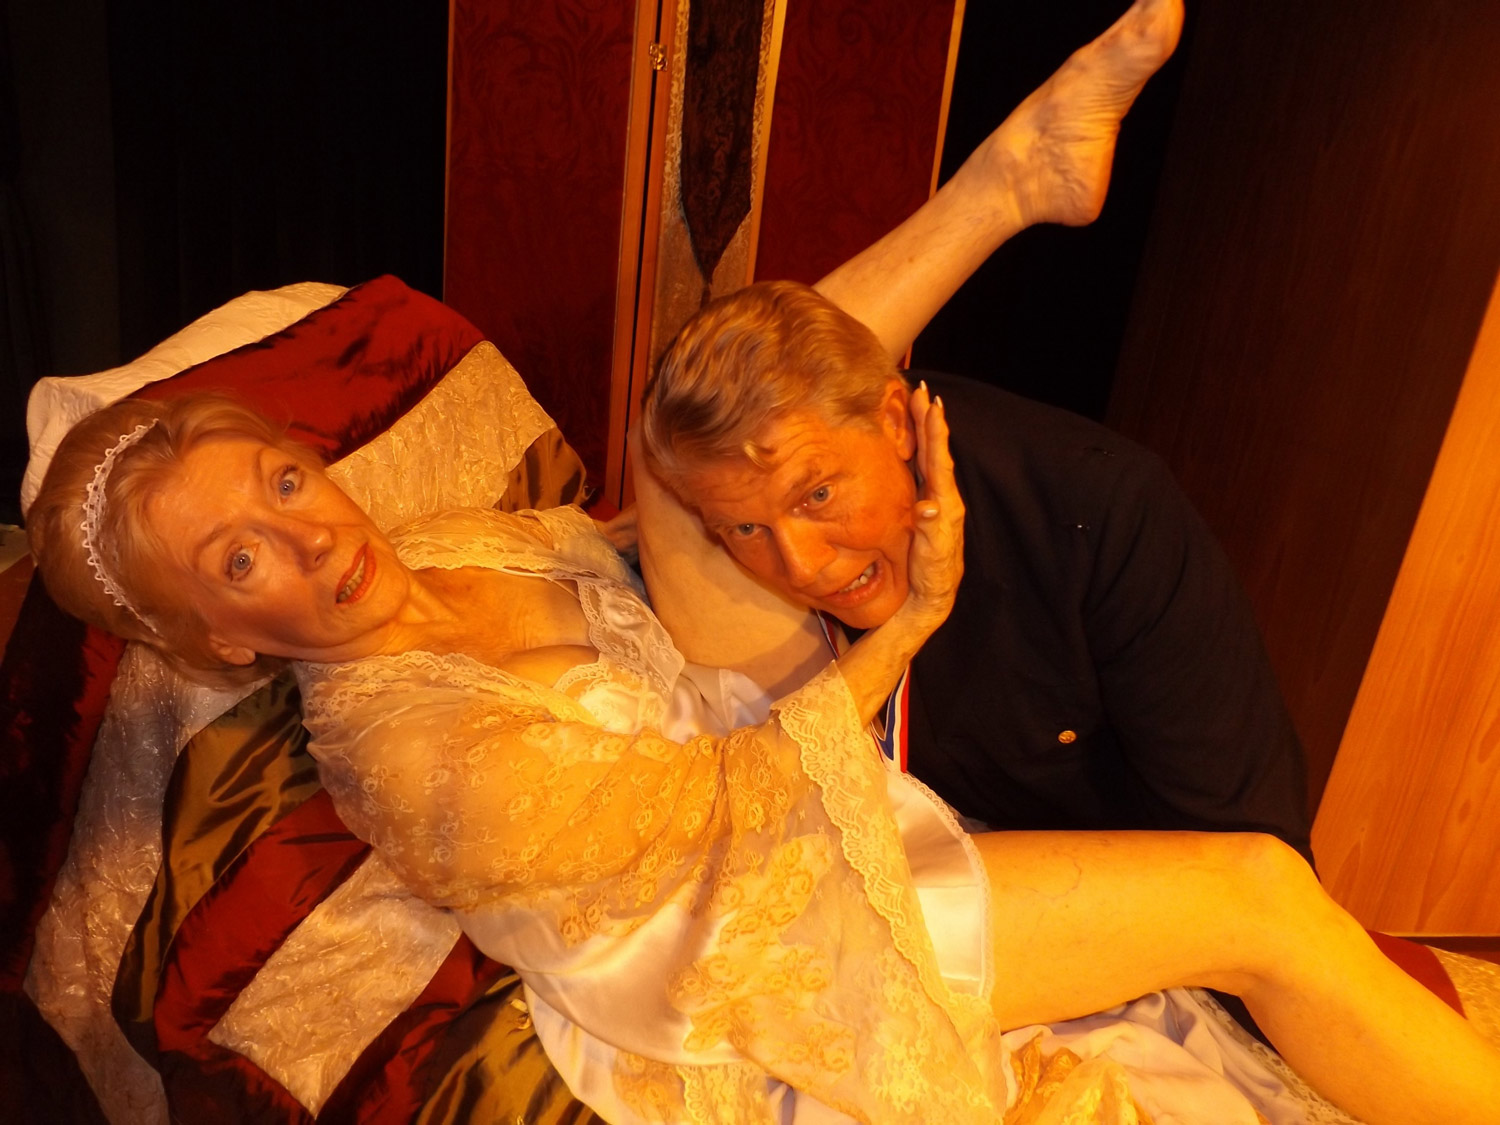 General Léon Saint-Pé (John Pope) and his wife, Mme. Saint-Pé (Anne Kraft), inflict marital discord on each other in 'The Waltz of the Toreadors,' the play staged all weekend at City Repertory Theatre in Palm Coast. See below. Click on the image for larger view. (© FlaglerLive)